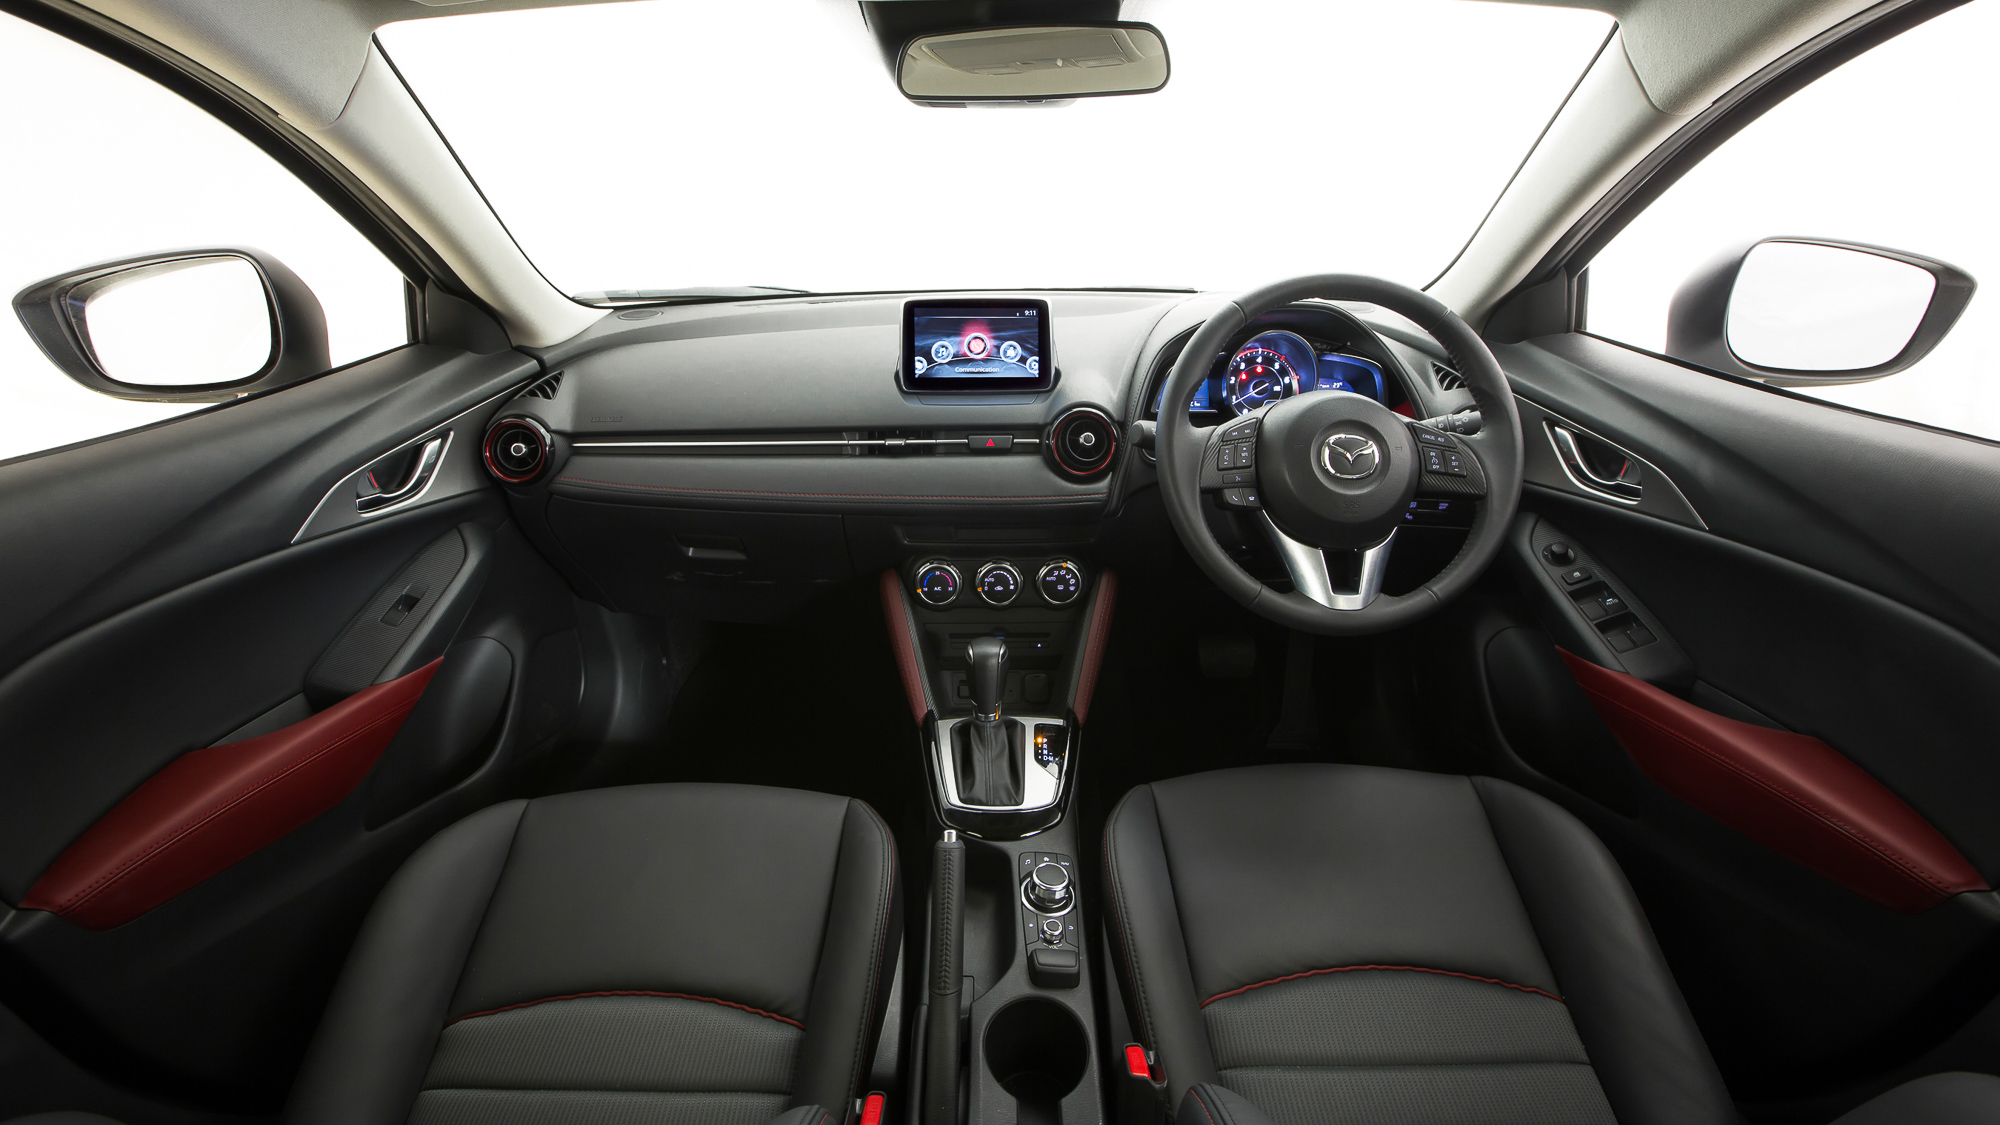 2015 mazda cx 3 pricing and specifications photos 1 of 3. Black Bedroom Furniture Sets. Home Design Ideas